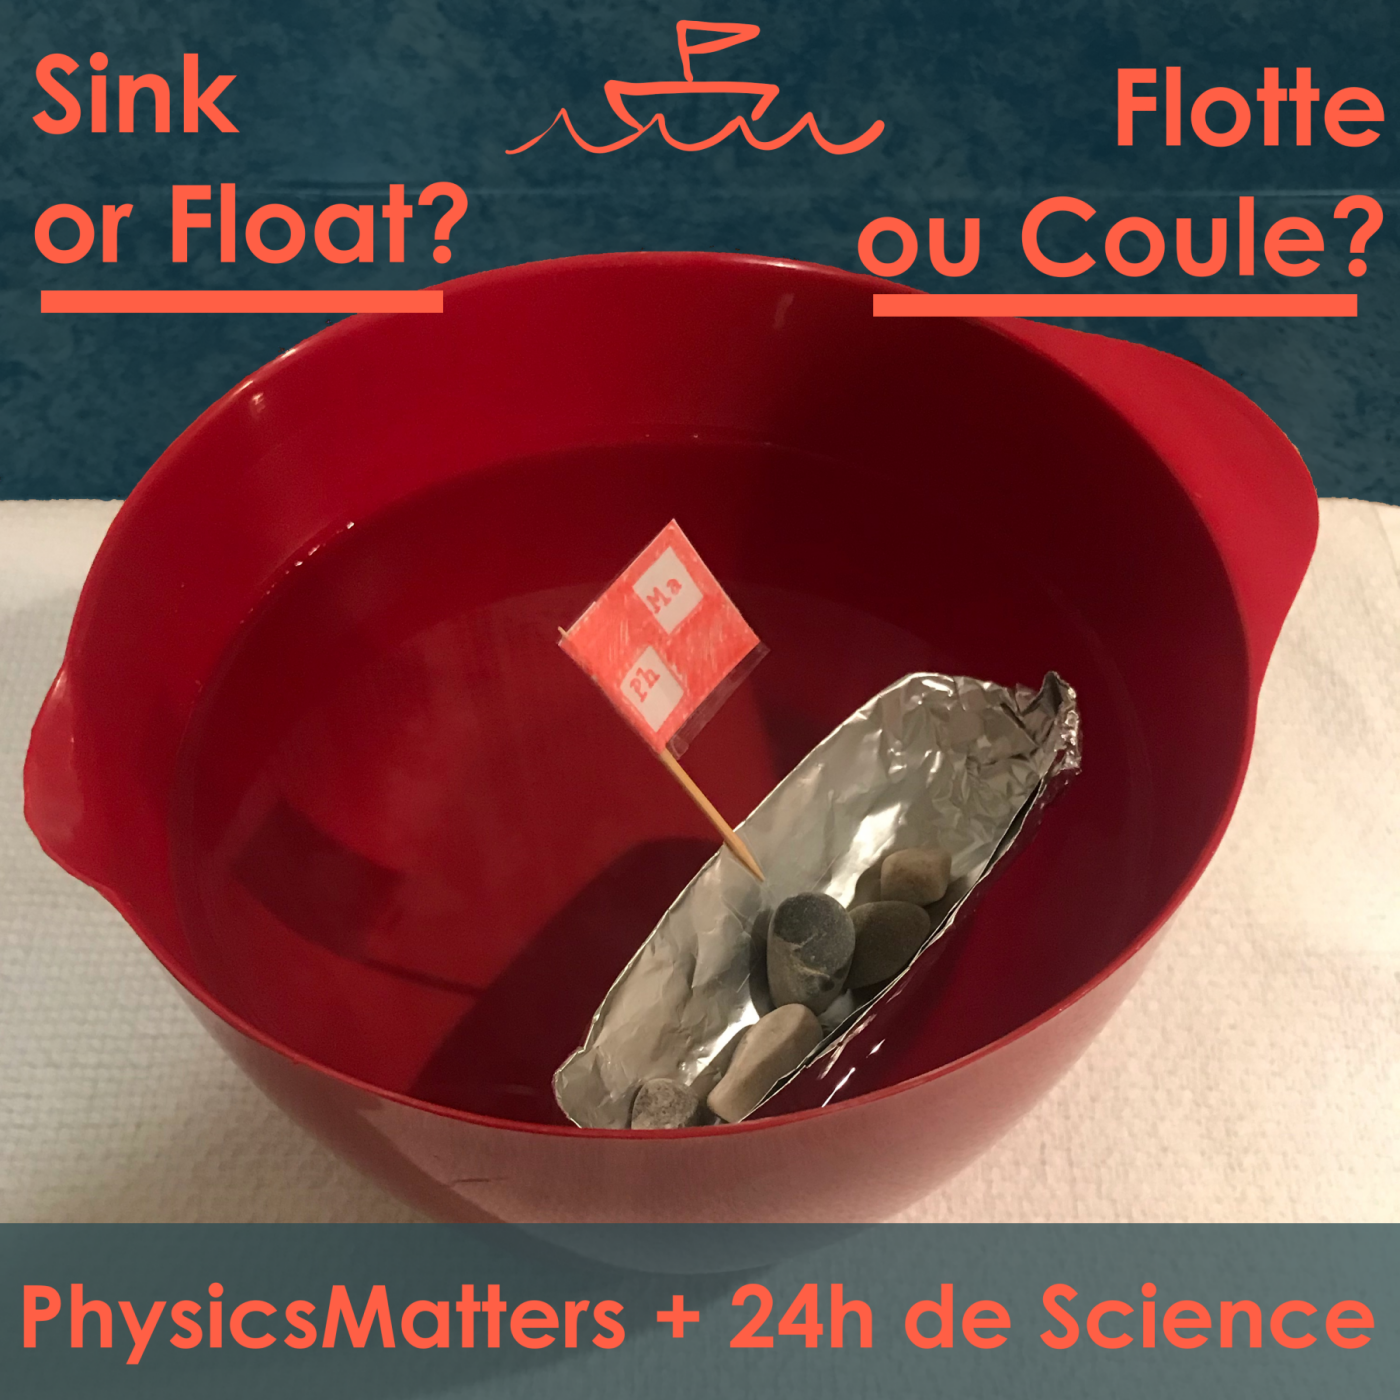 Sink or Float? / Flotte ou coule?